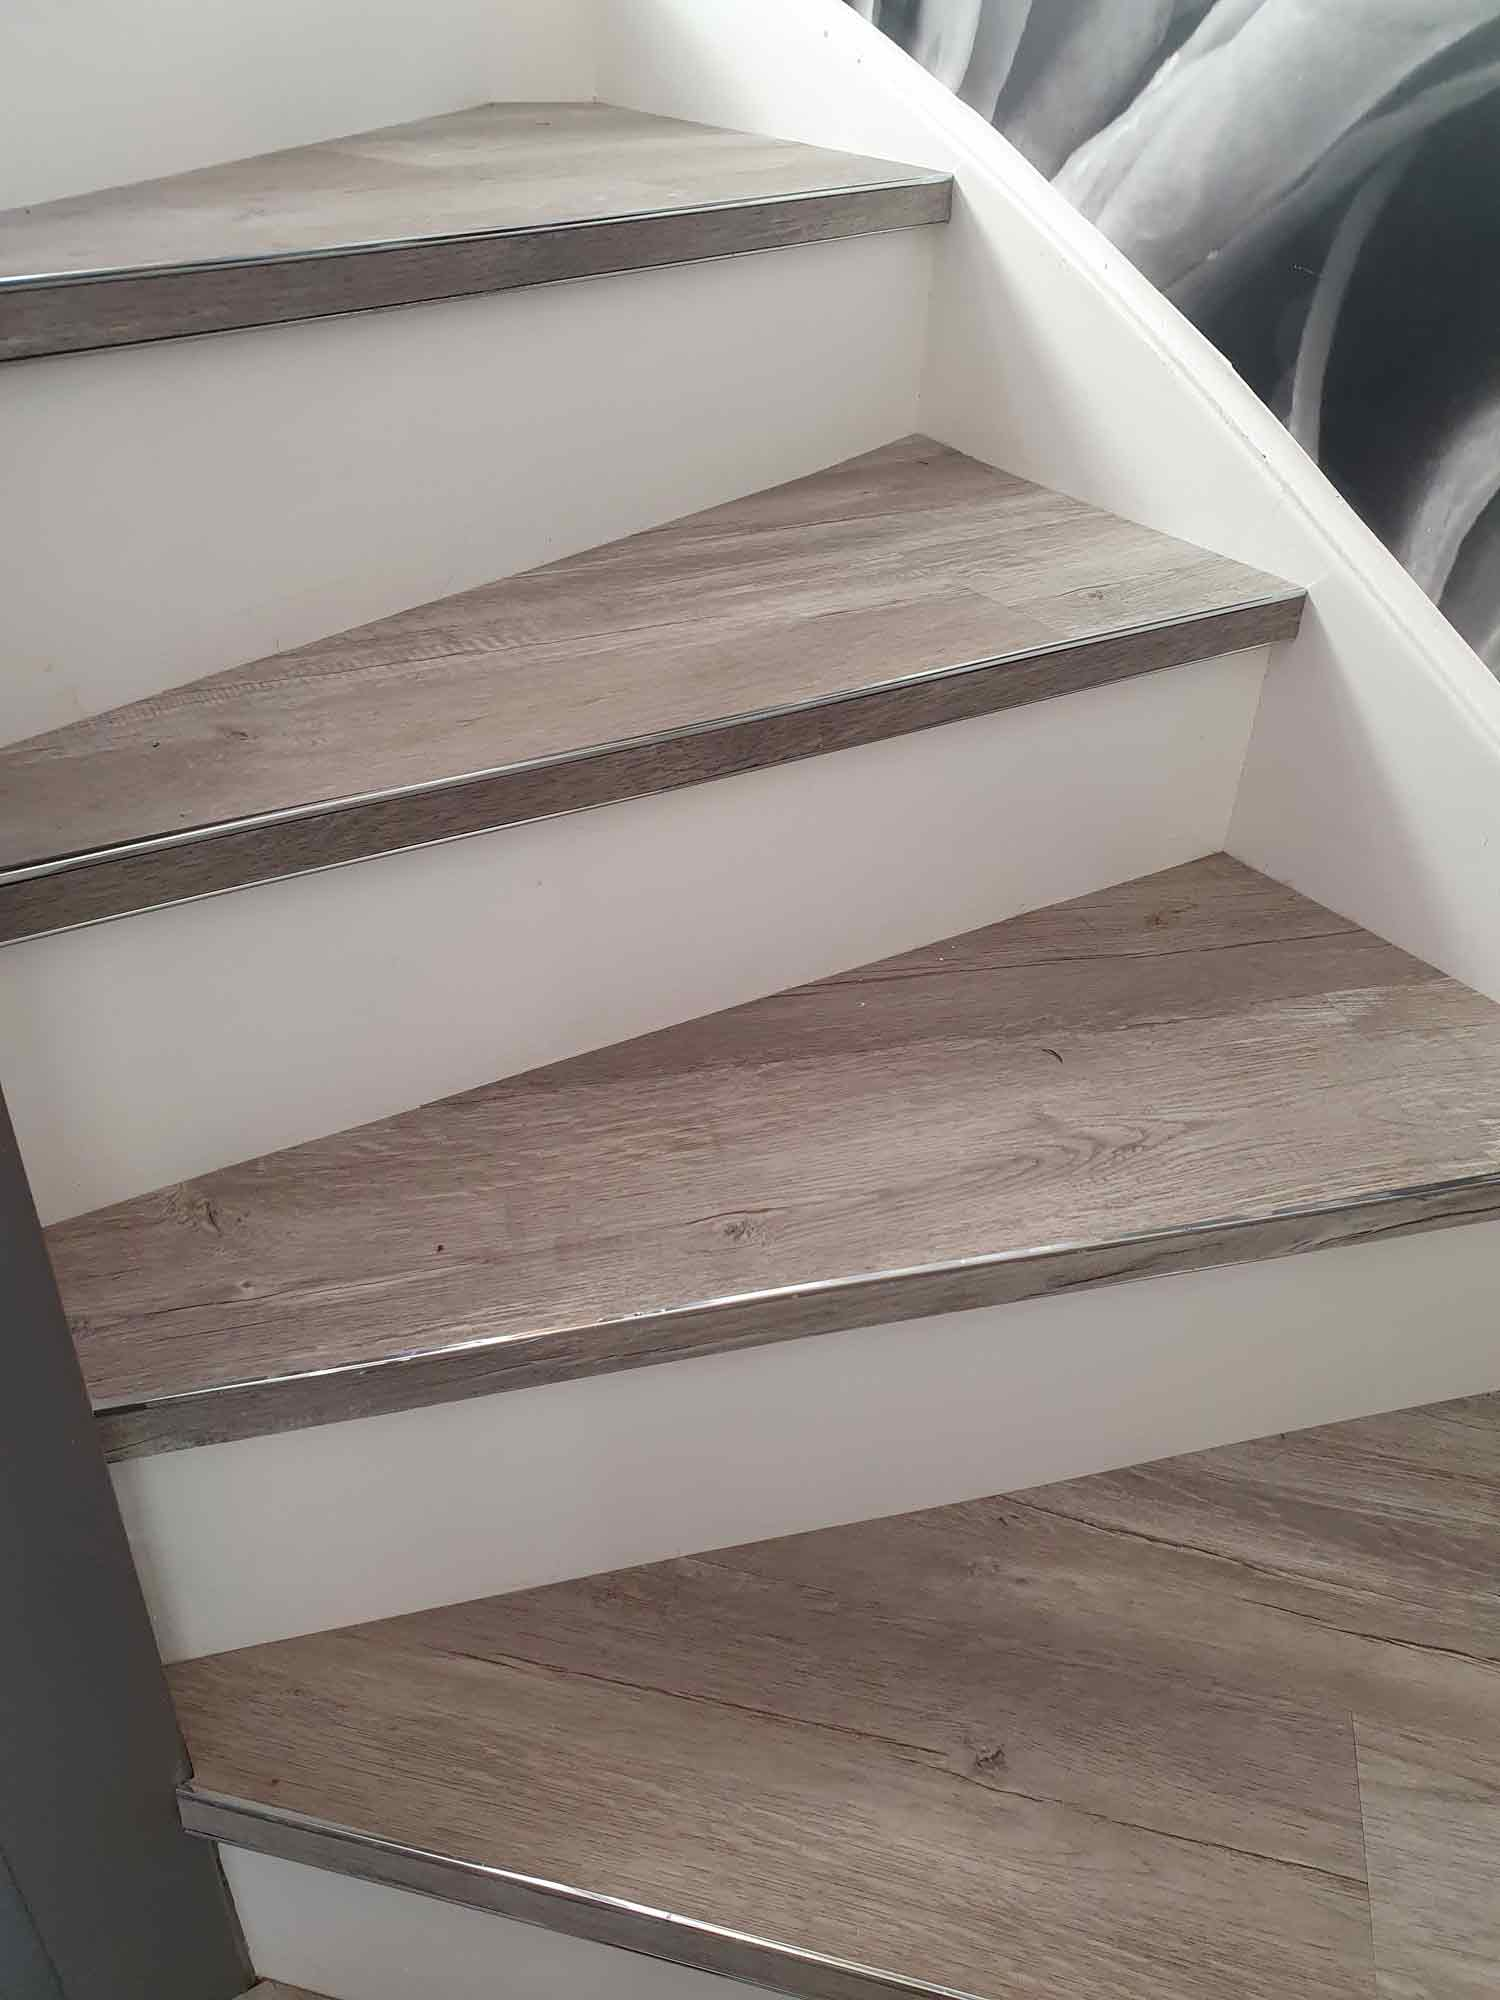 Premier bendy bull stair edge fitted to winding staircase fitted with wood-look LVT